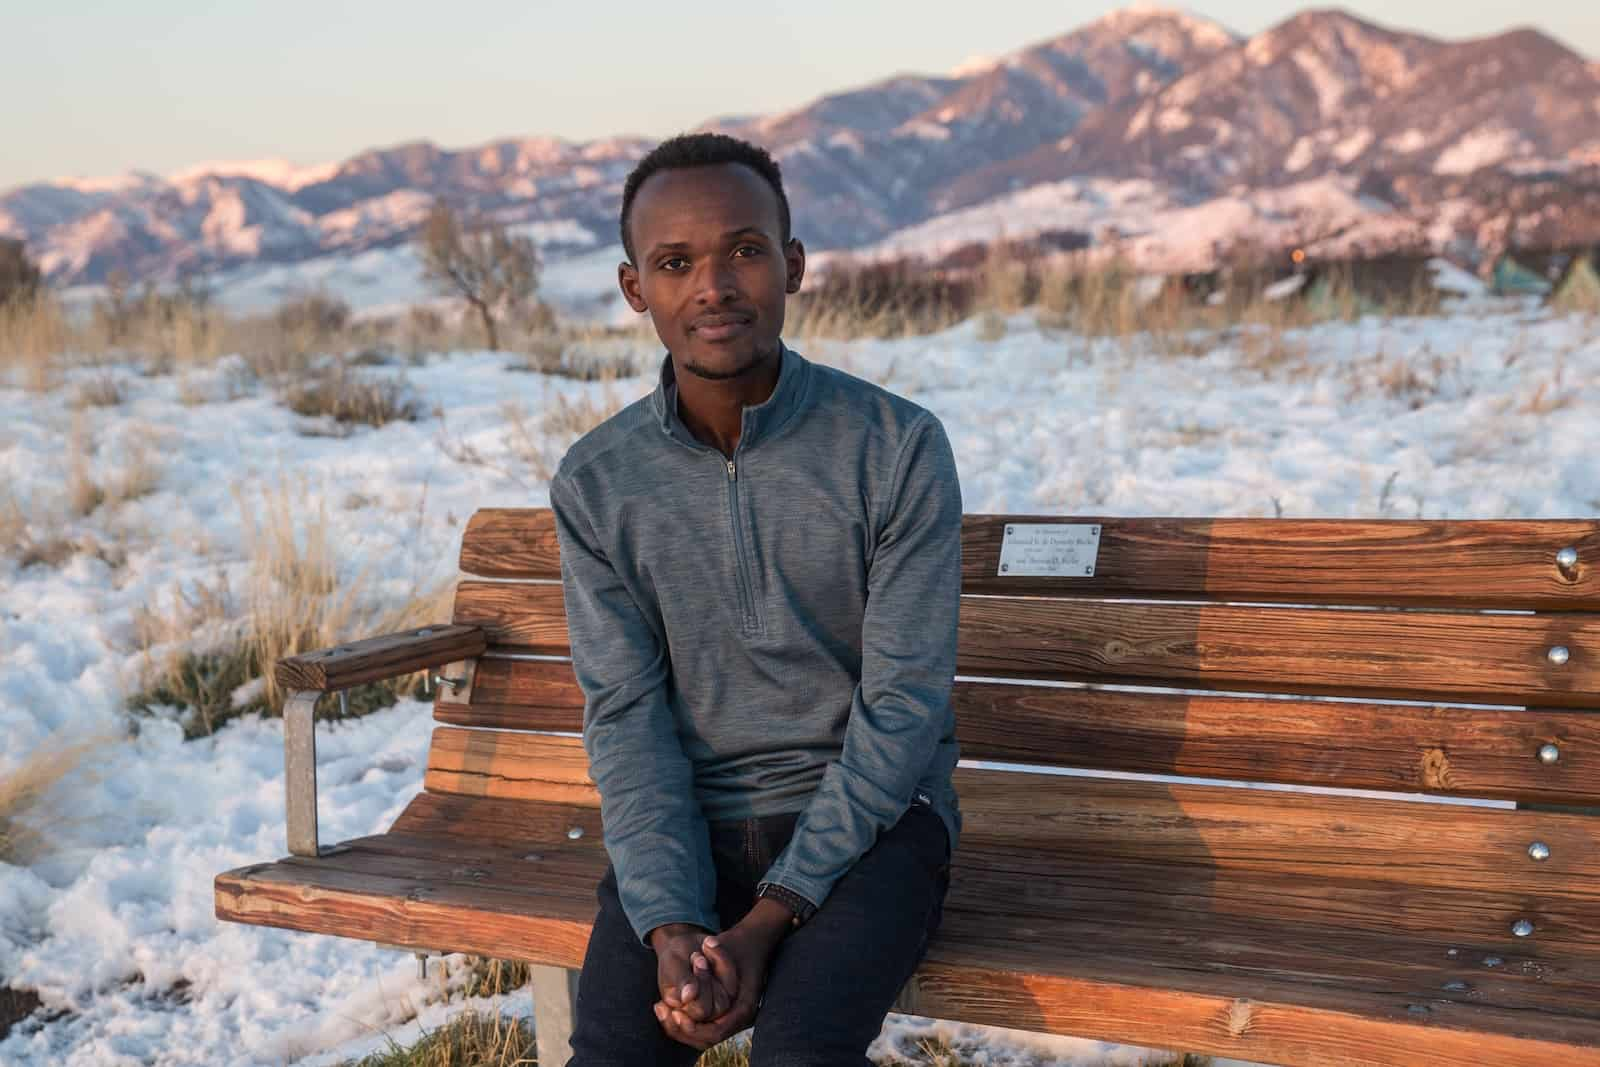 A man in a grey sweater sits on a bench in front of snowy hills.